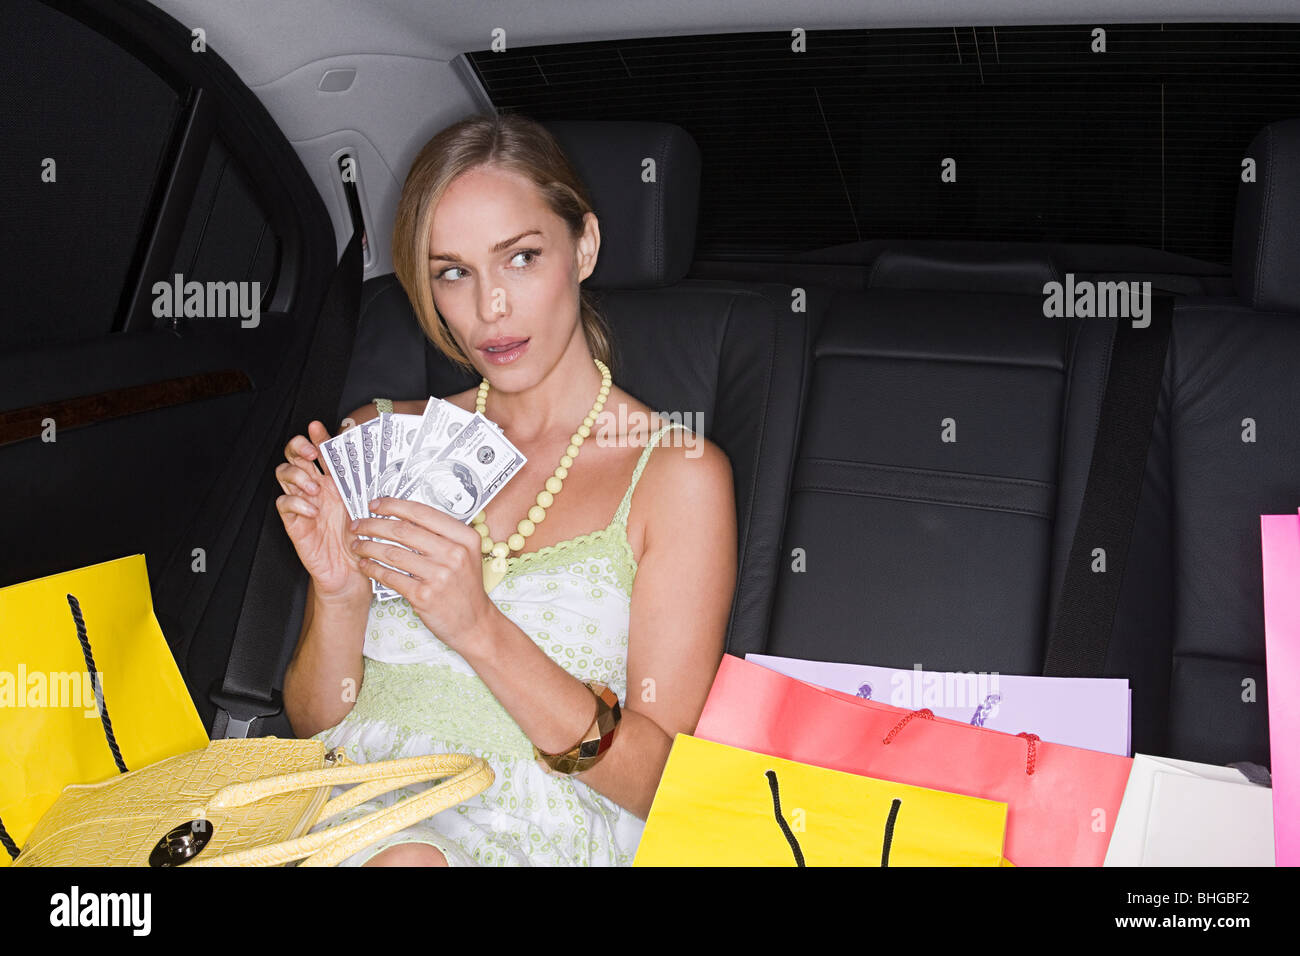 Woman with shopping bags and cash in a car - Stock Image